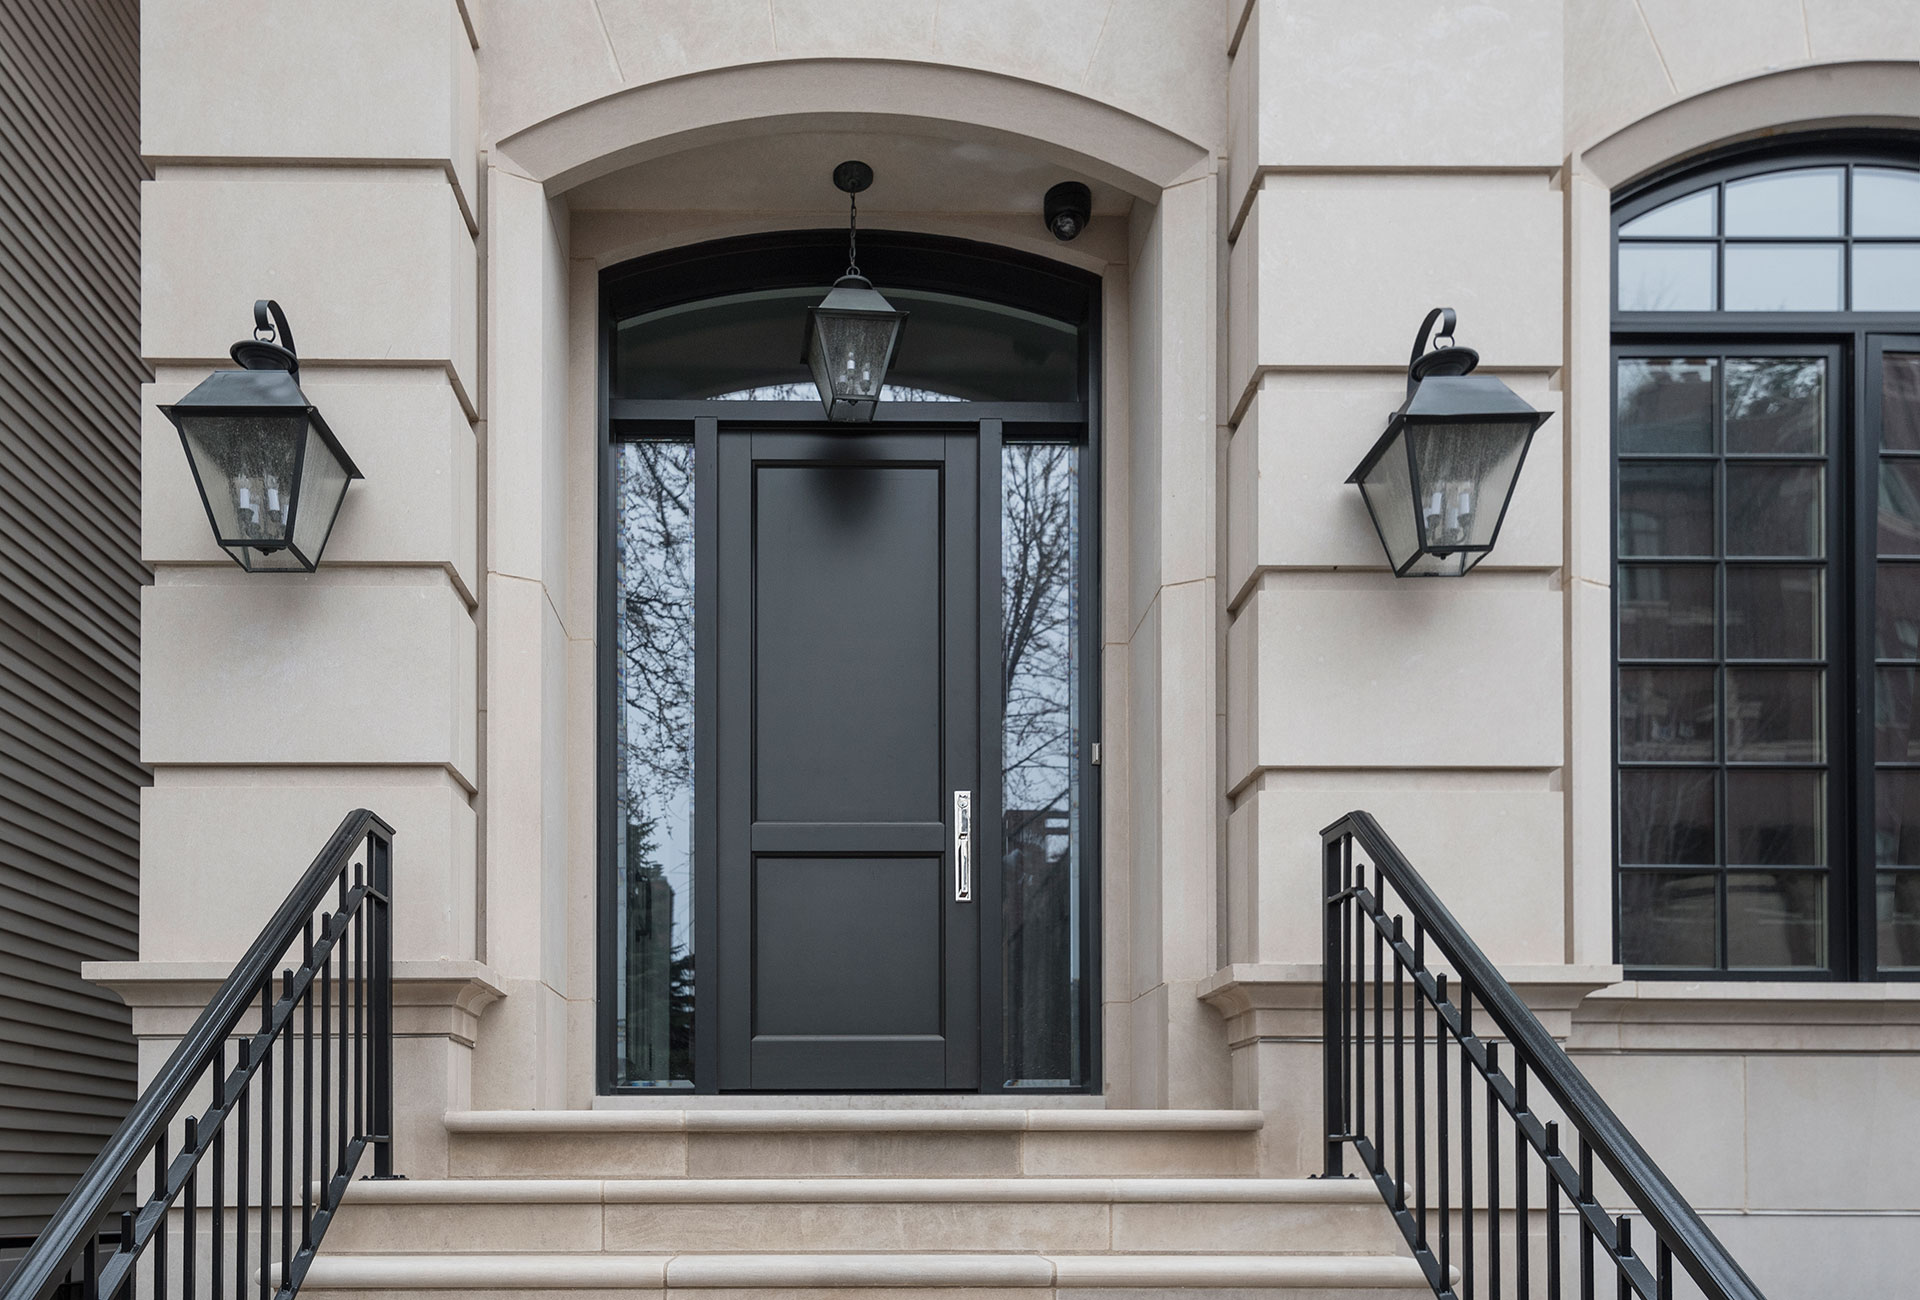 Transitional Mahogany Front Door With Espresso Finish N Burling St Chicagocustom By Glenview Haus